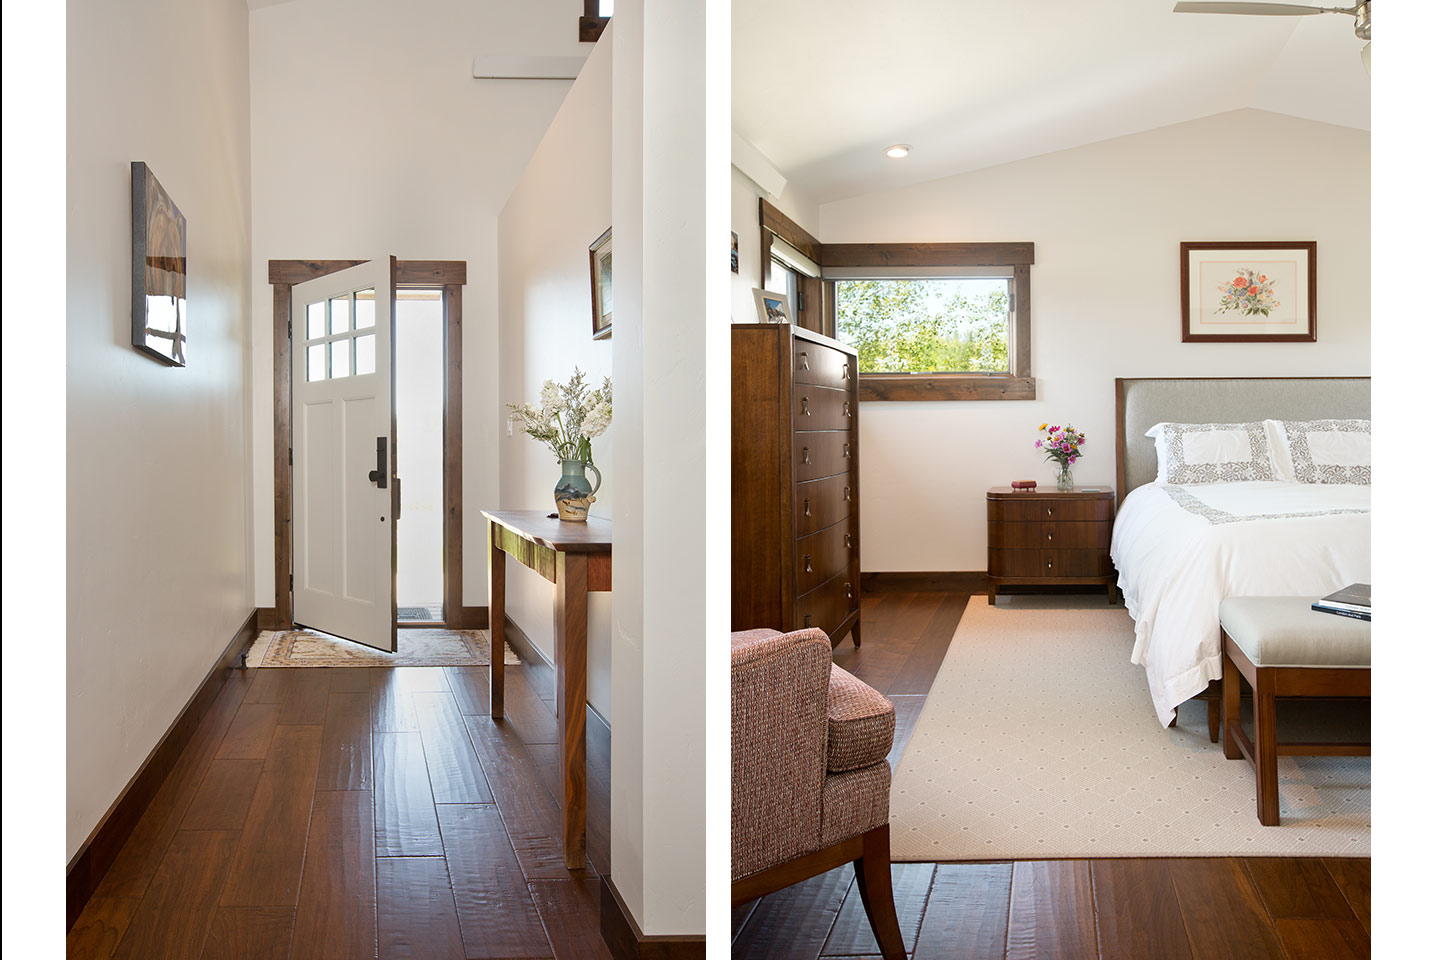 Hallway and bedroom with a simple color palette